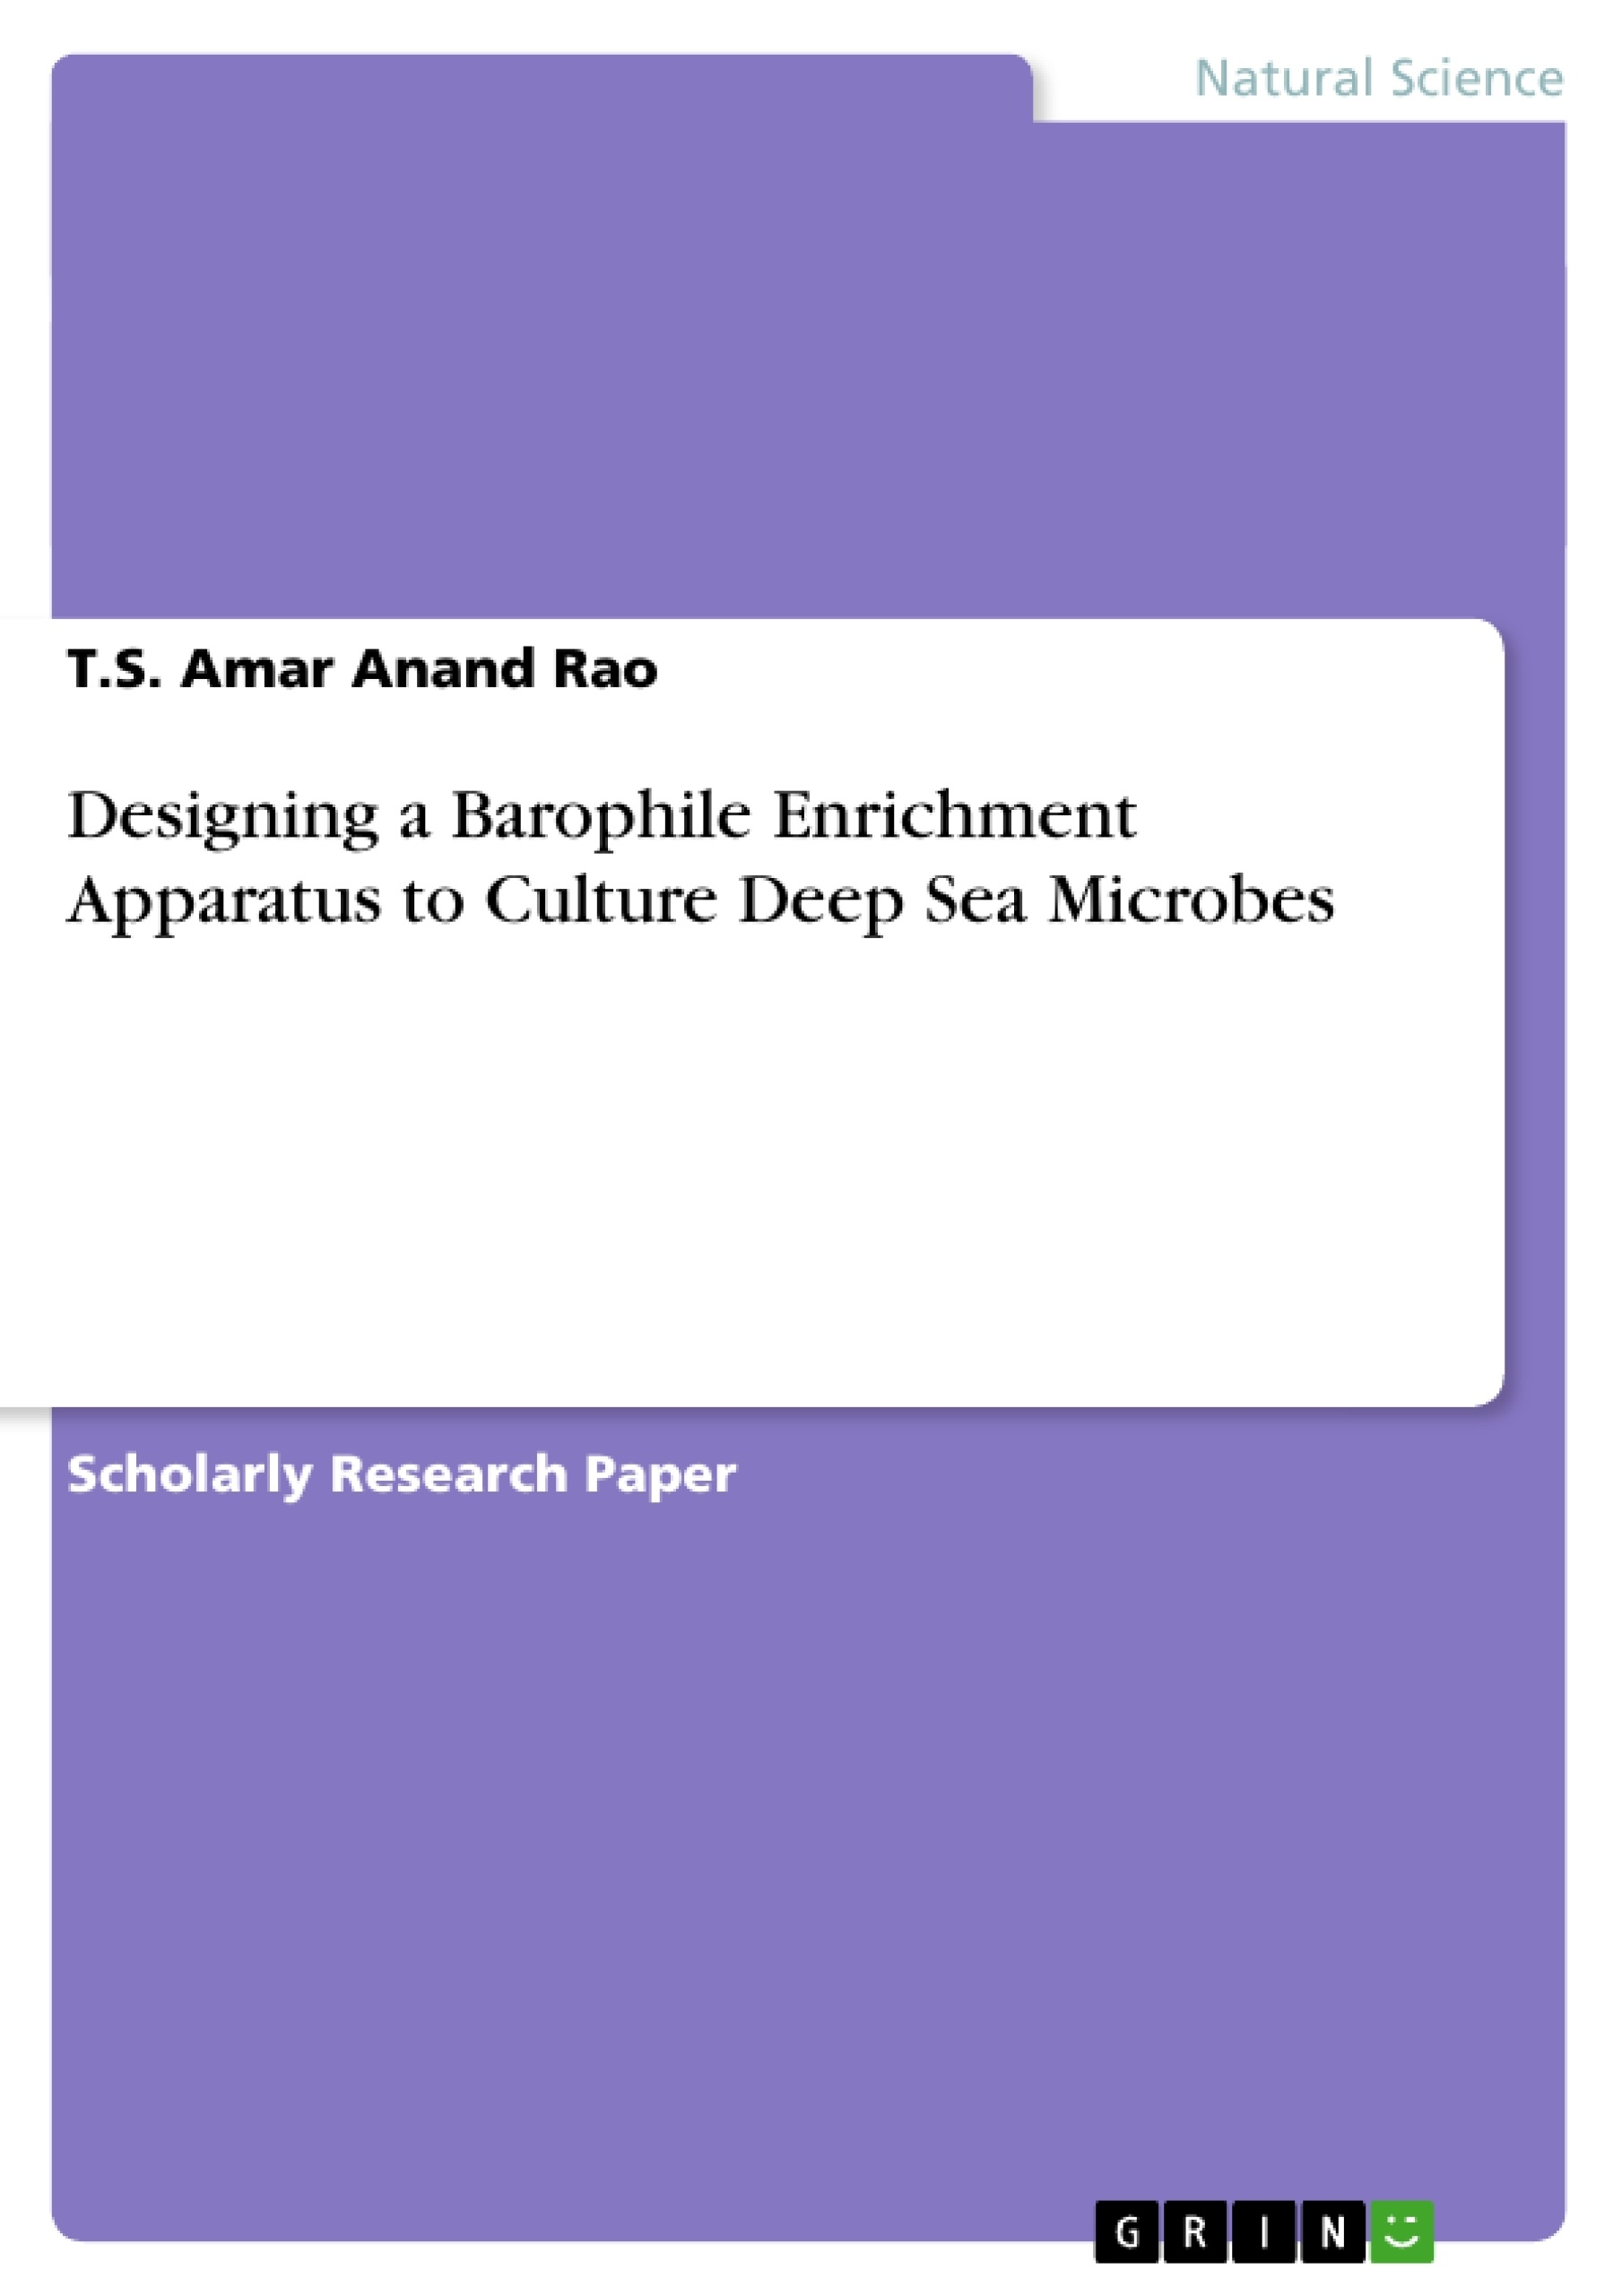 Title: Designing a Barophile Enrichment Apparatus to Culture Deep Sea Microbes